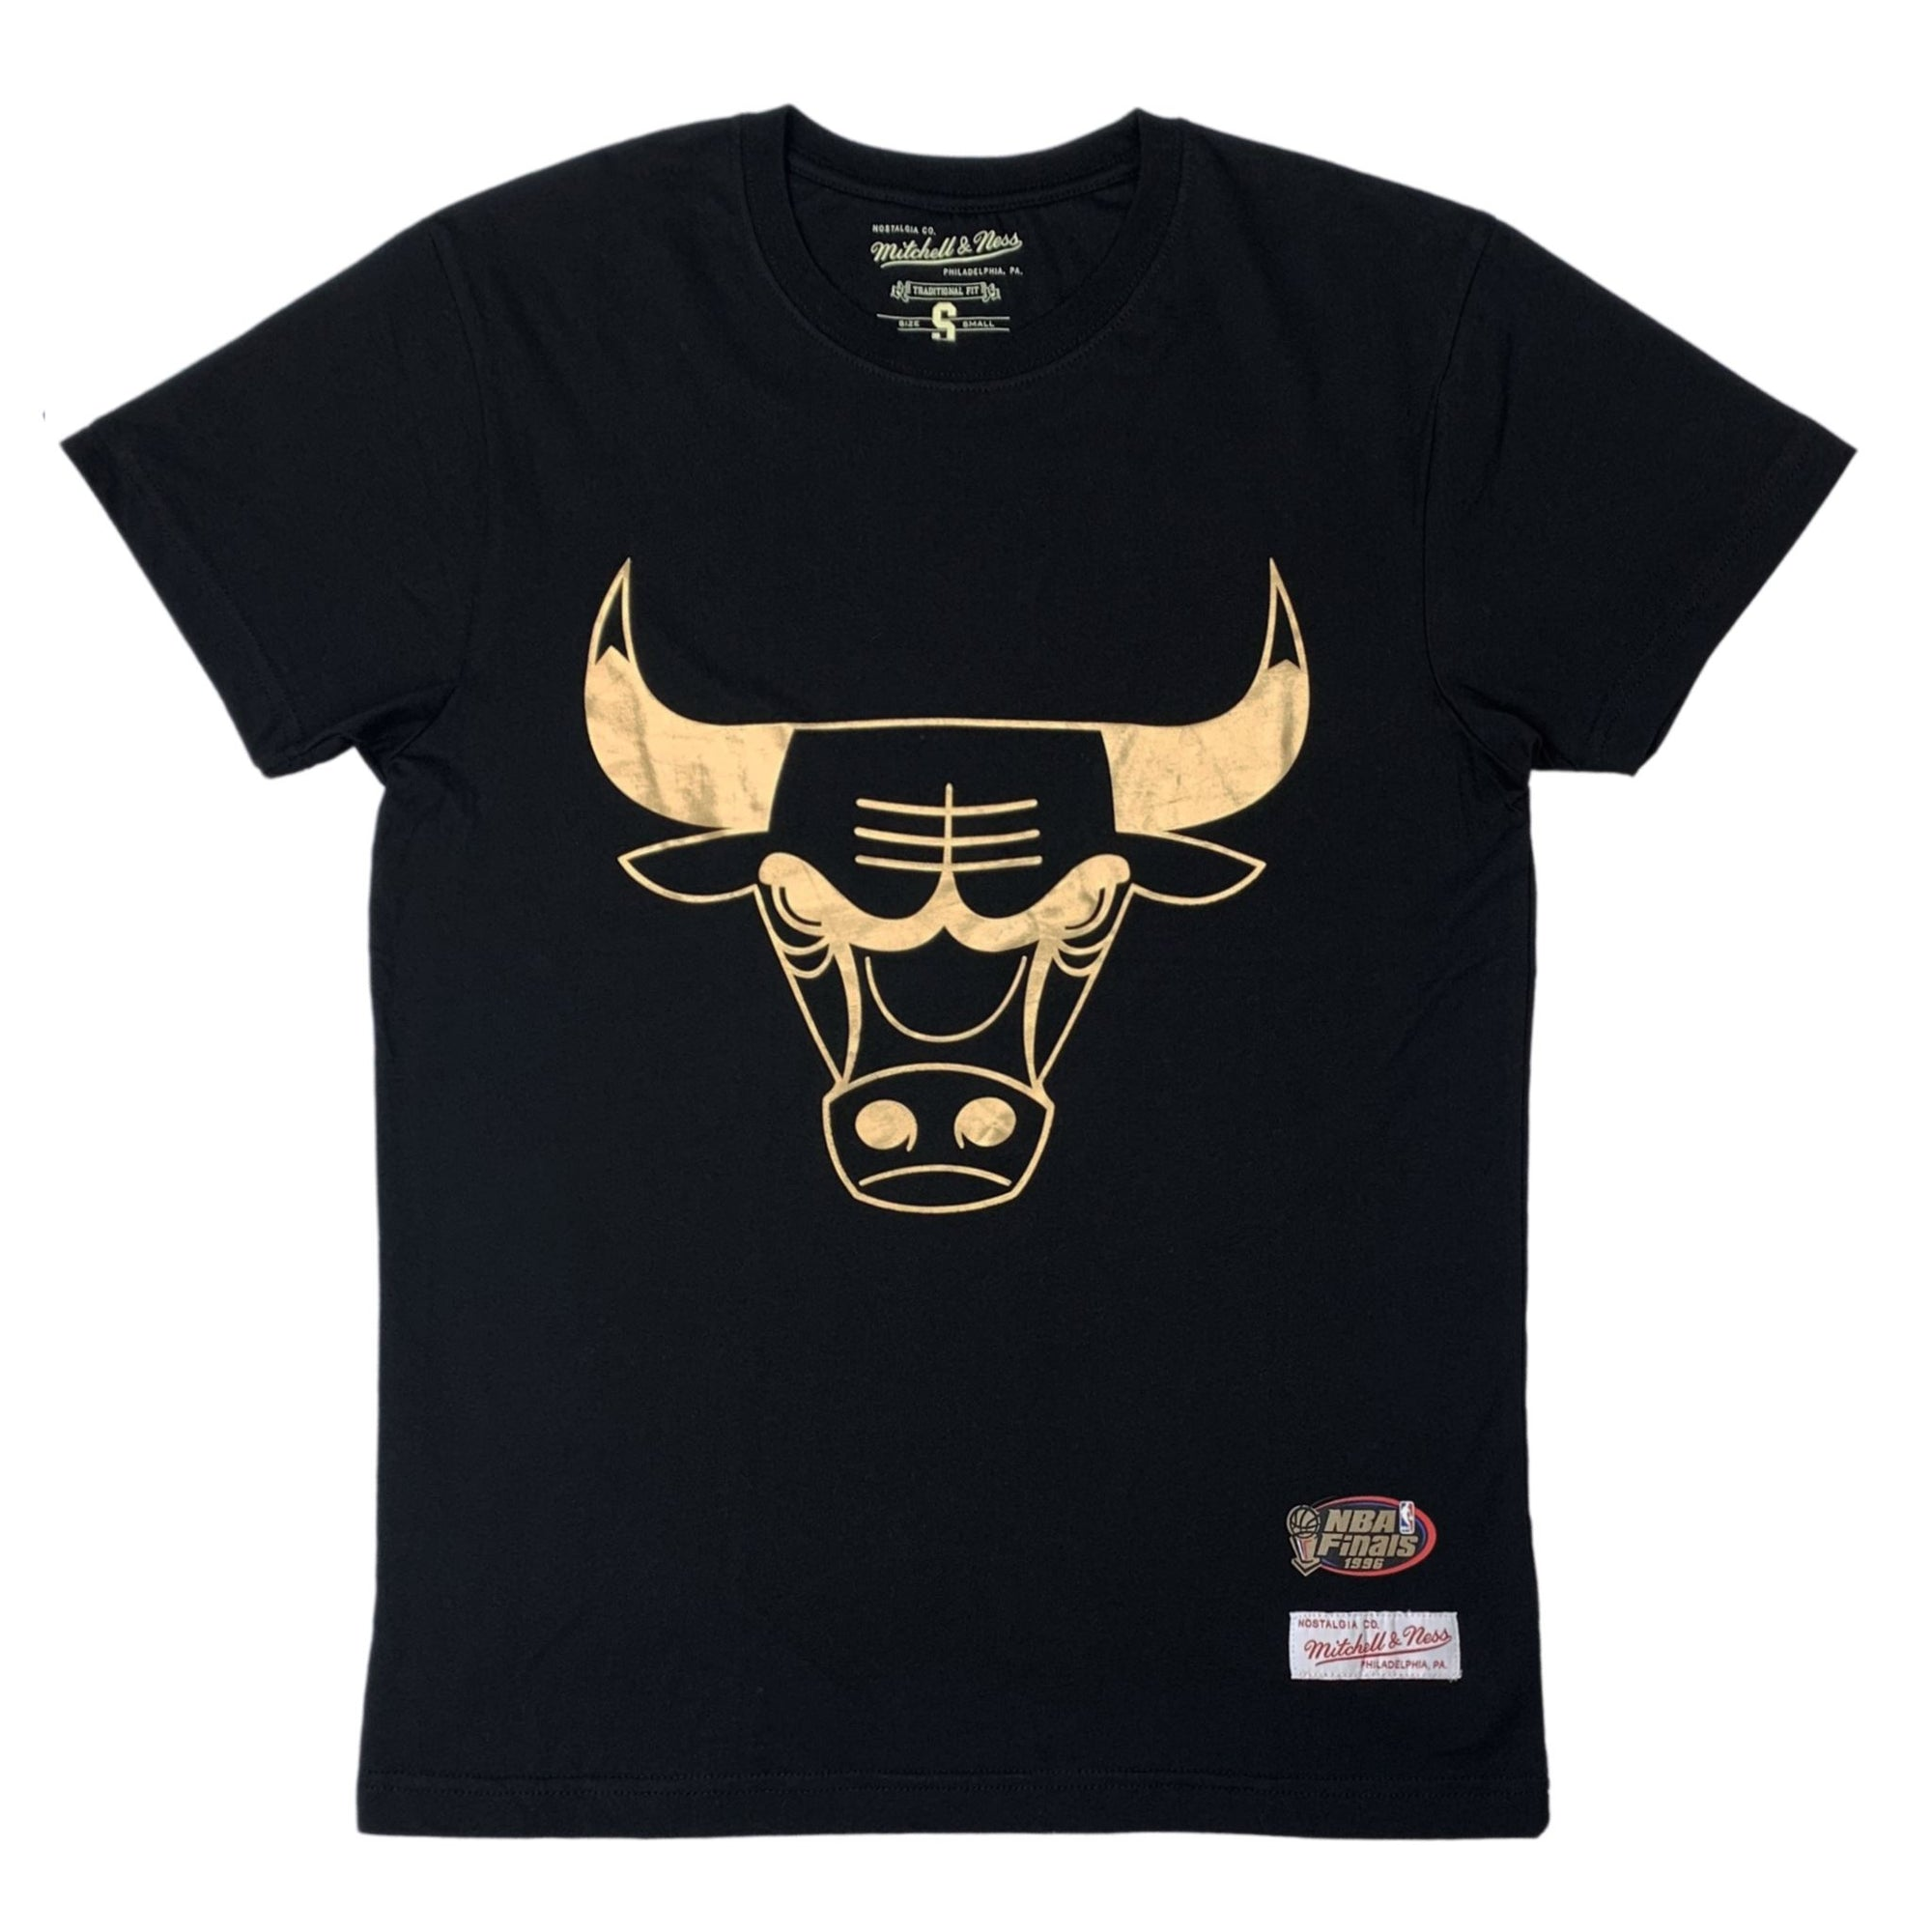 Mitchell & Ness Gold Team Tee - Chicago Bulls (Black) SP-ApparelTees-Mens Mitchell & Ness